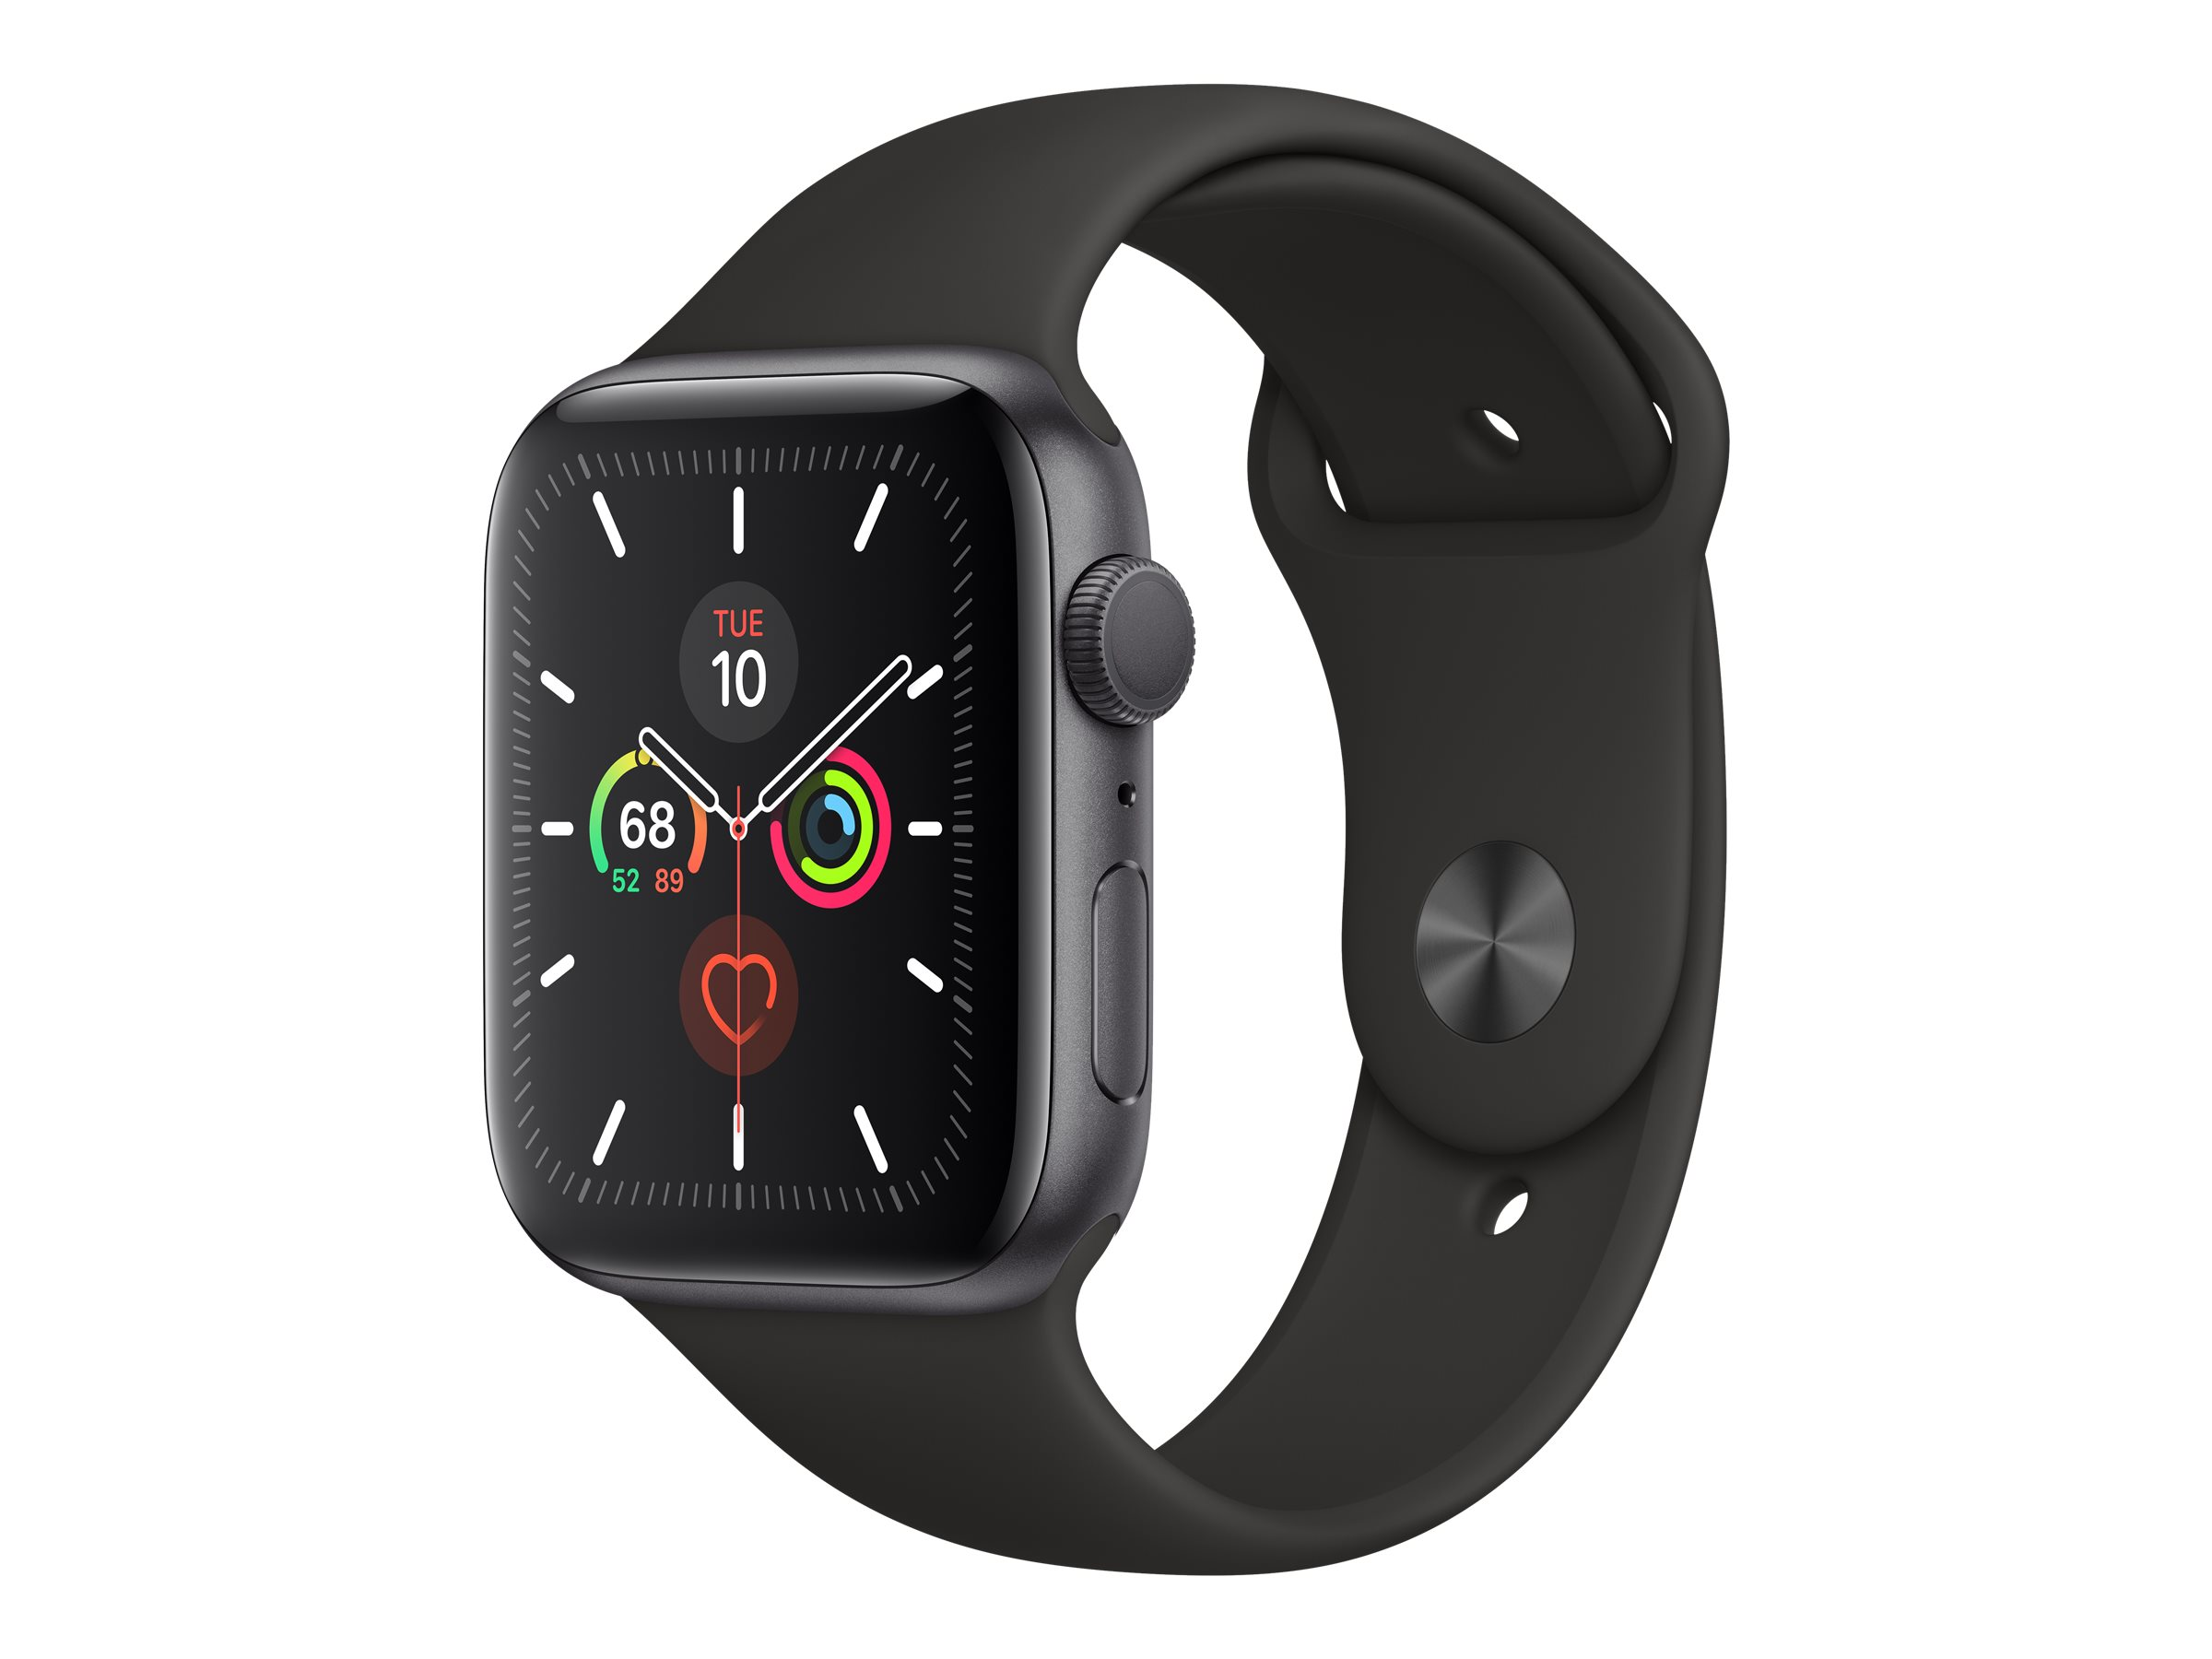 Apple Watch Series 5 (GPS) - space gray aluminum - smart watch with sport band - black - 32 GB